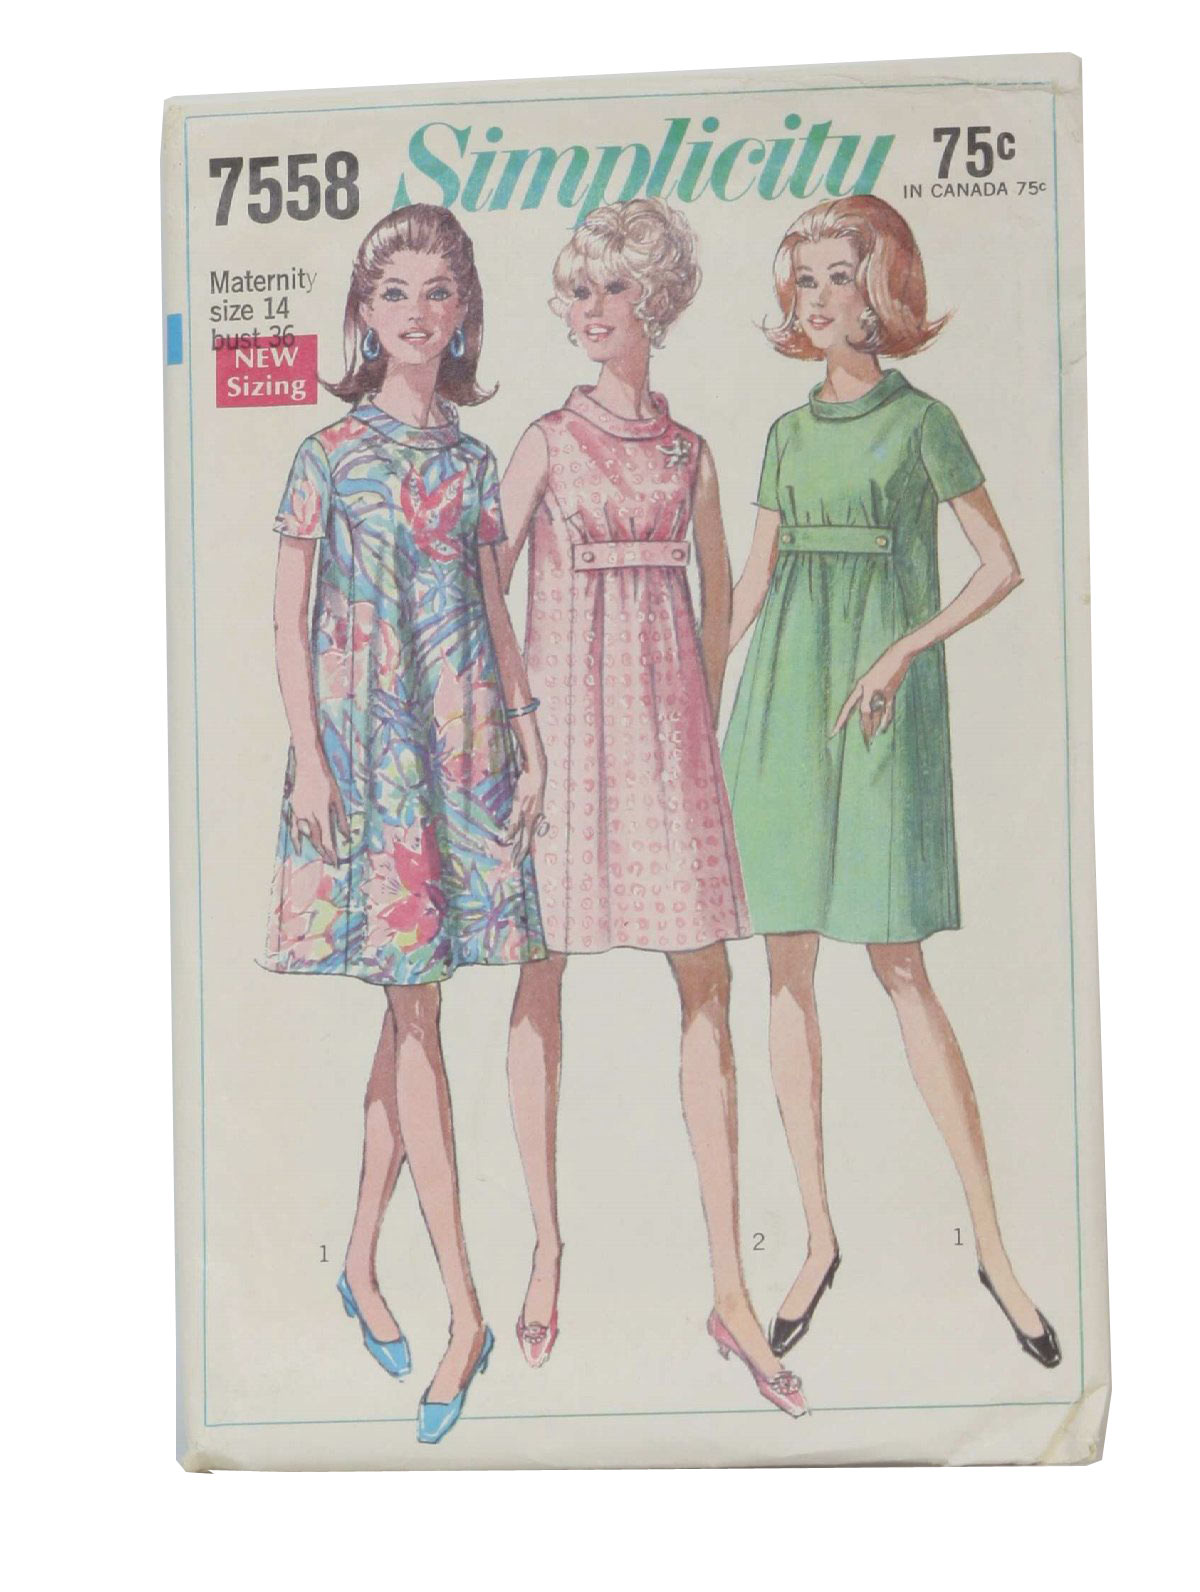 1960s retro sewing pattern 1968 simplicity pattern no 7558 1960s retro sewing pattern 1968 simplicity pattern no 7558 maternity dress in misses sizes the dress with let out sides seams has princess seaming ombrellifo Gallery